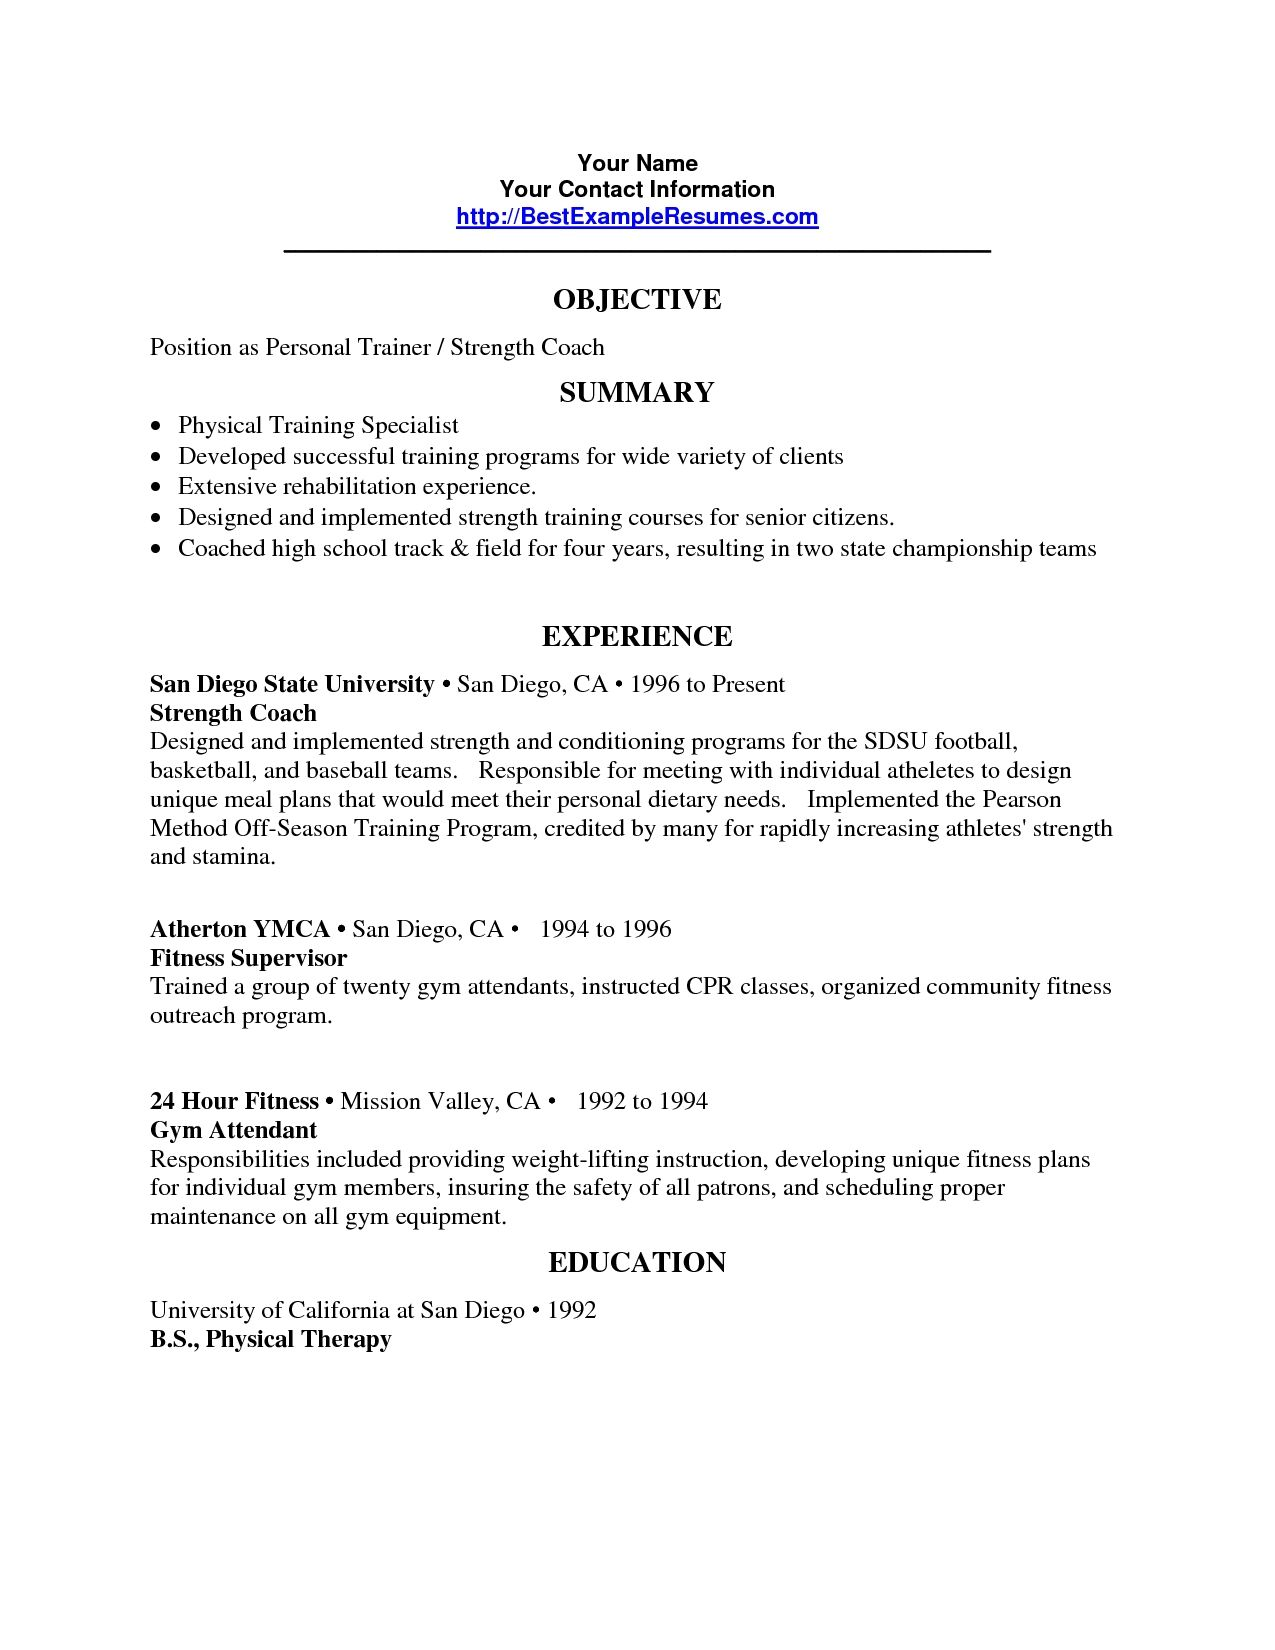 Personal Trainer Resume Objective Sample Gallery Photos